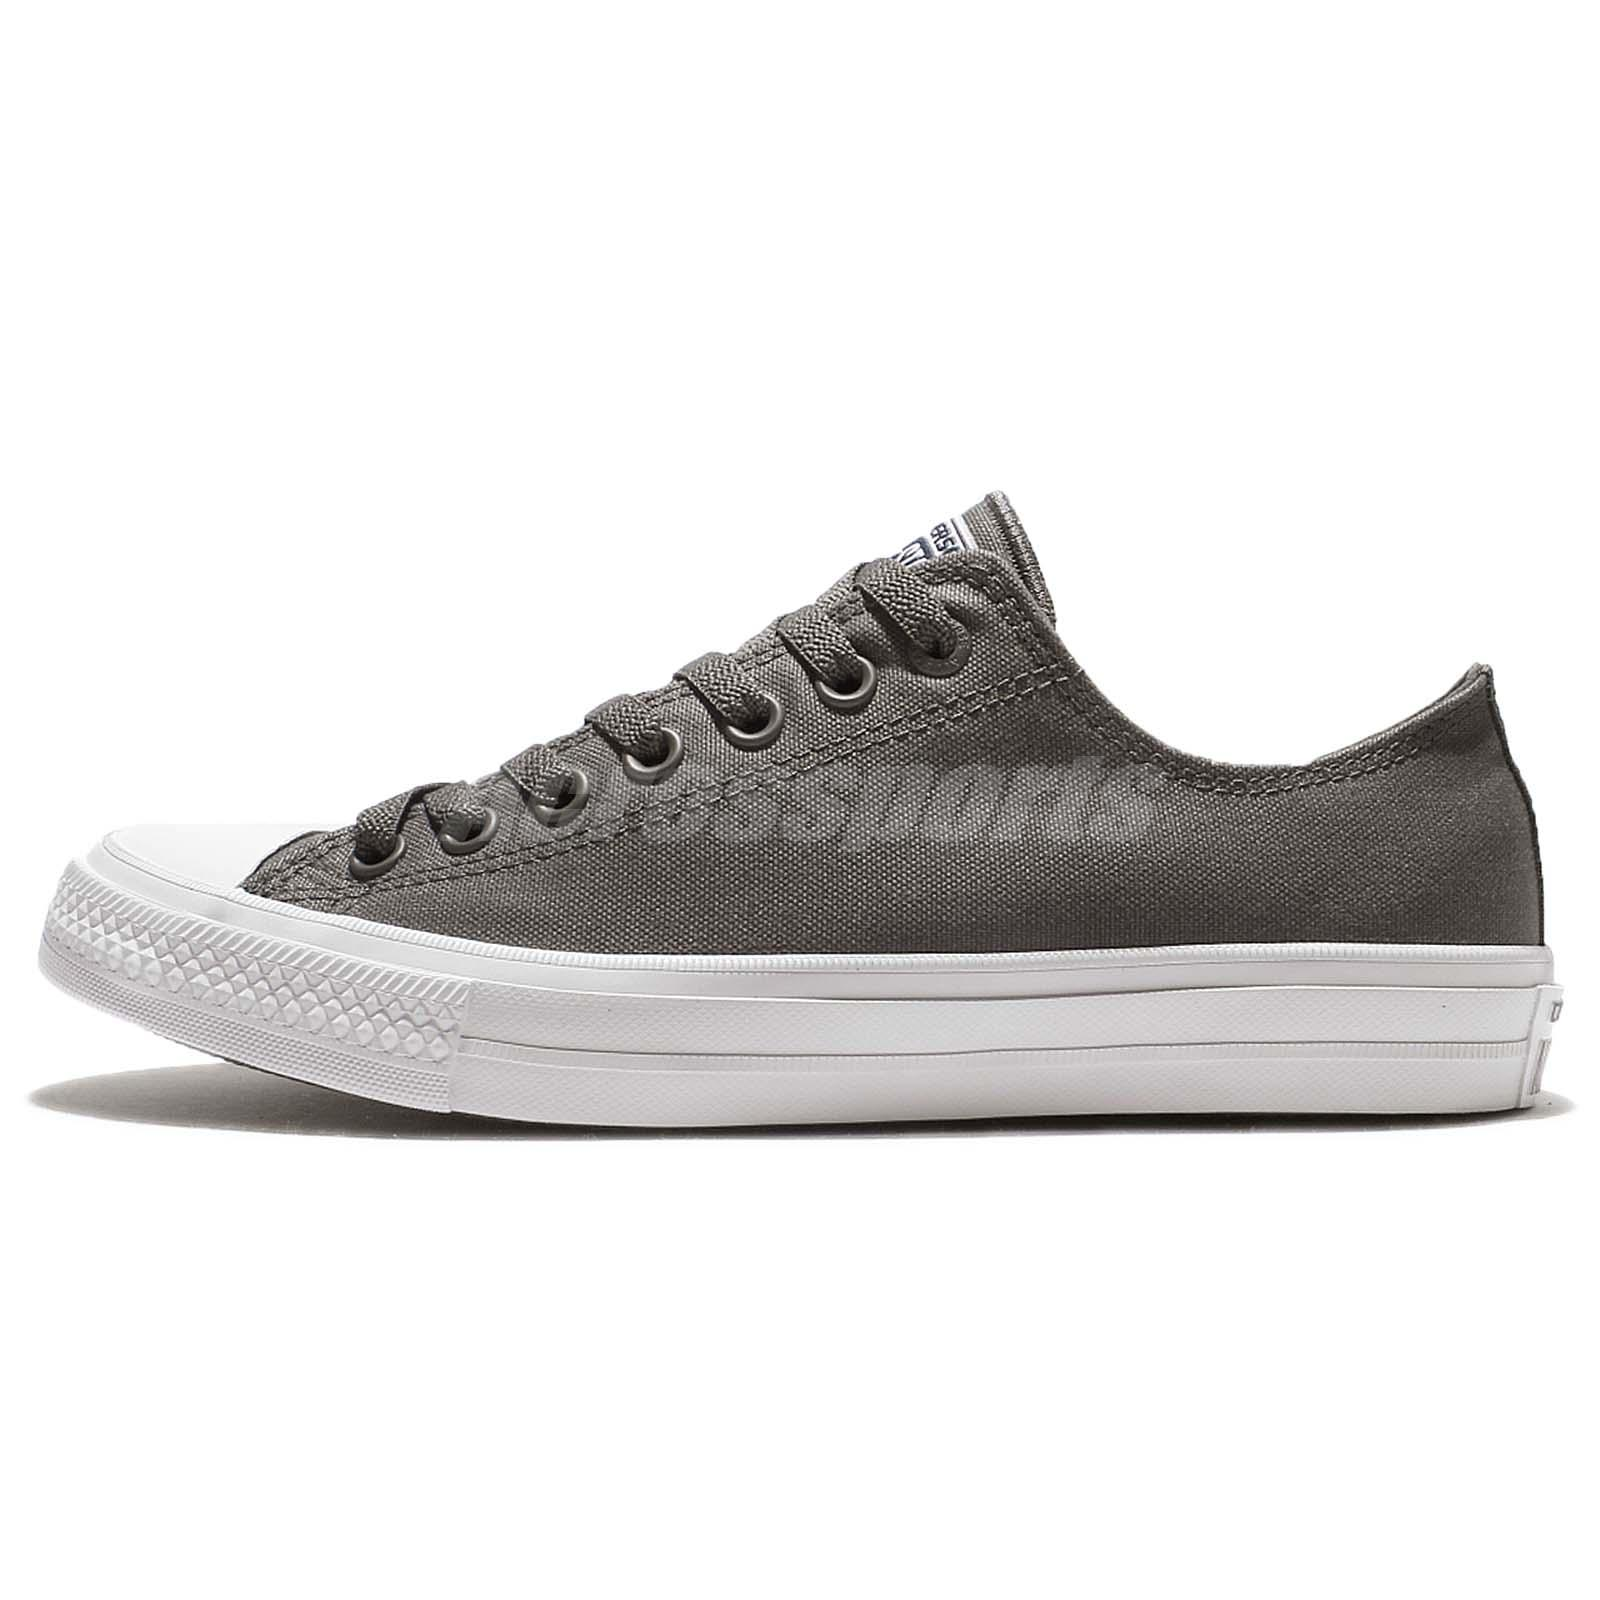 Converse Chuck Taylor All Star II 2 Thunder Grey White Men Casual Shoes  150153C